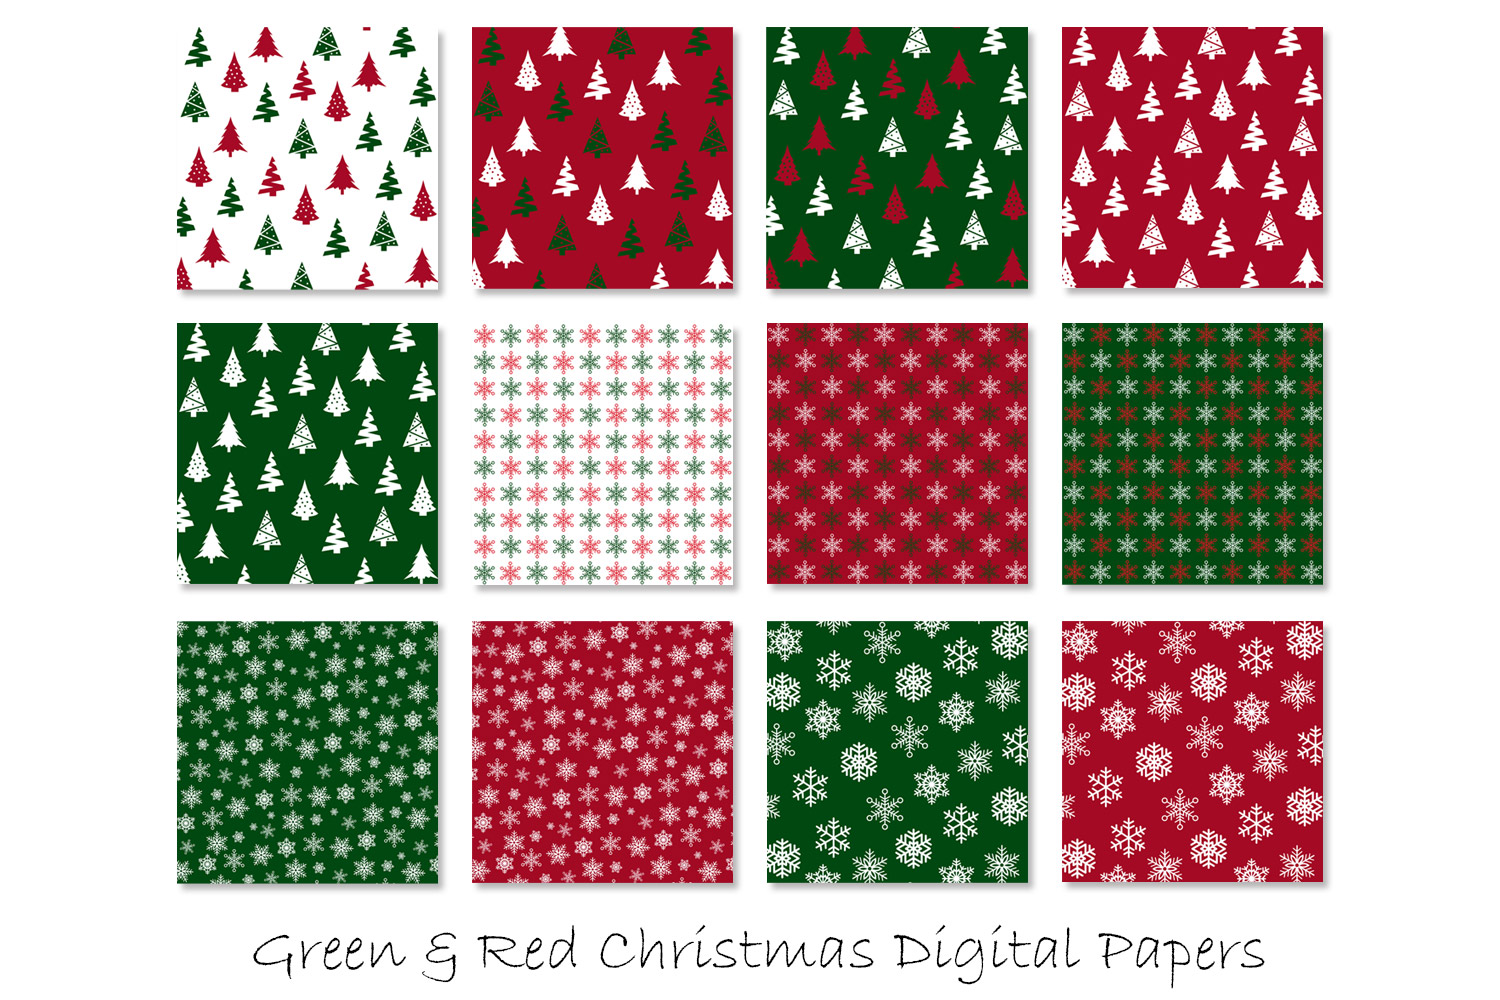 Christmas Digital Paper - Red and Green Christmas Background example image 2